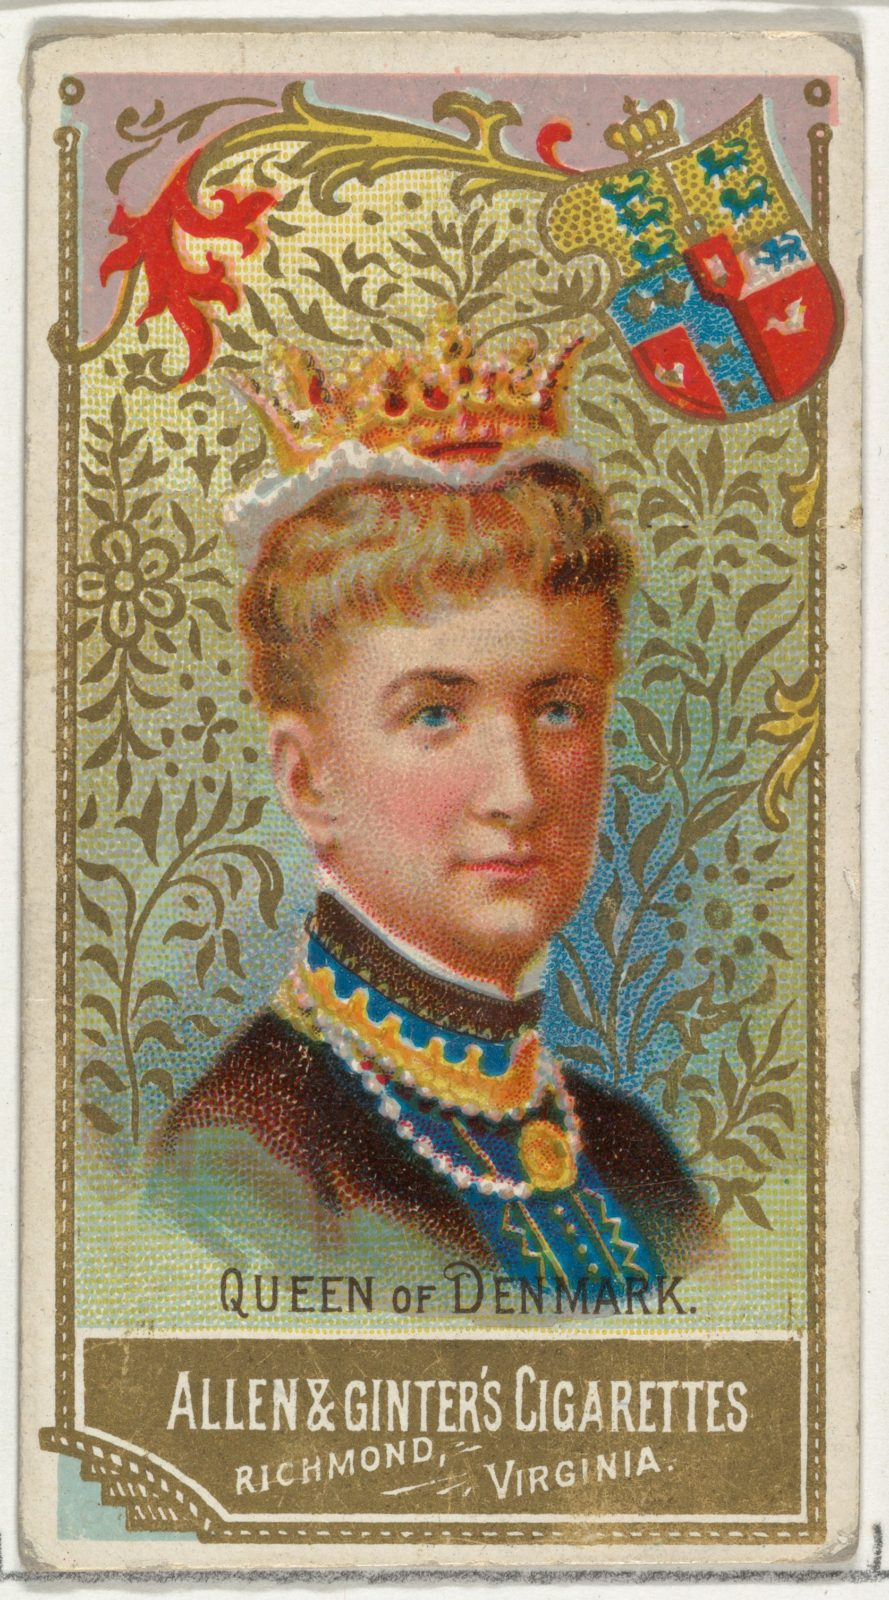 Queen of Denmark, from World's Sovereigns series (N34) for Allen & Ginter Cigarettes